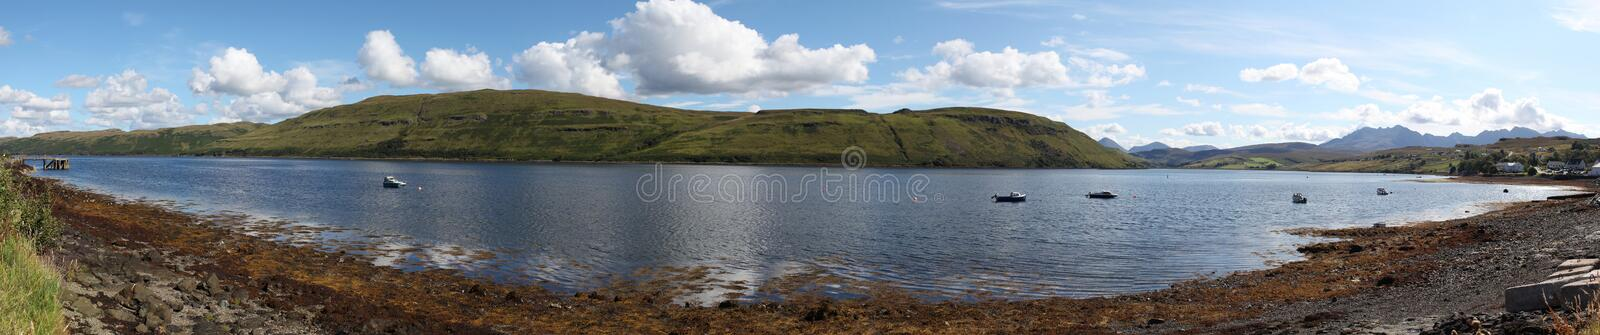 Scottish landscape stock images